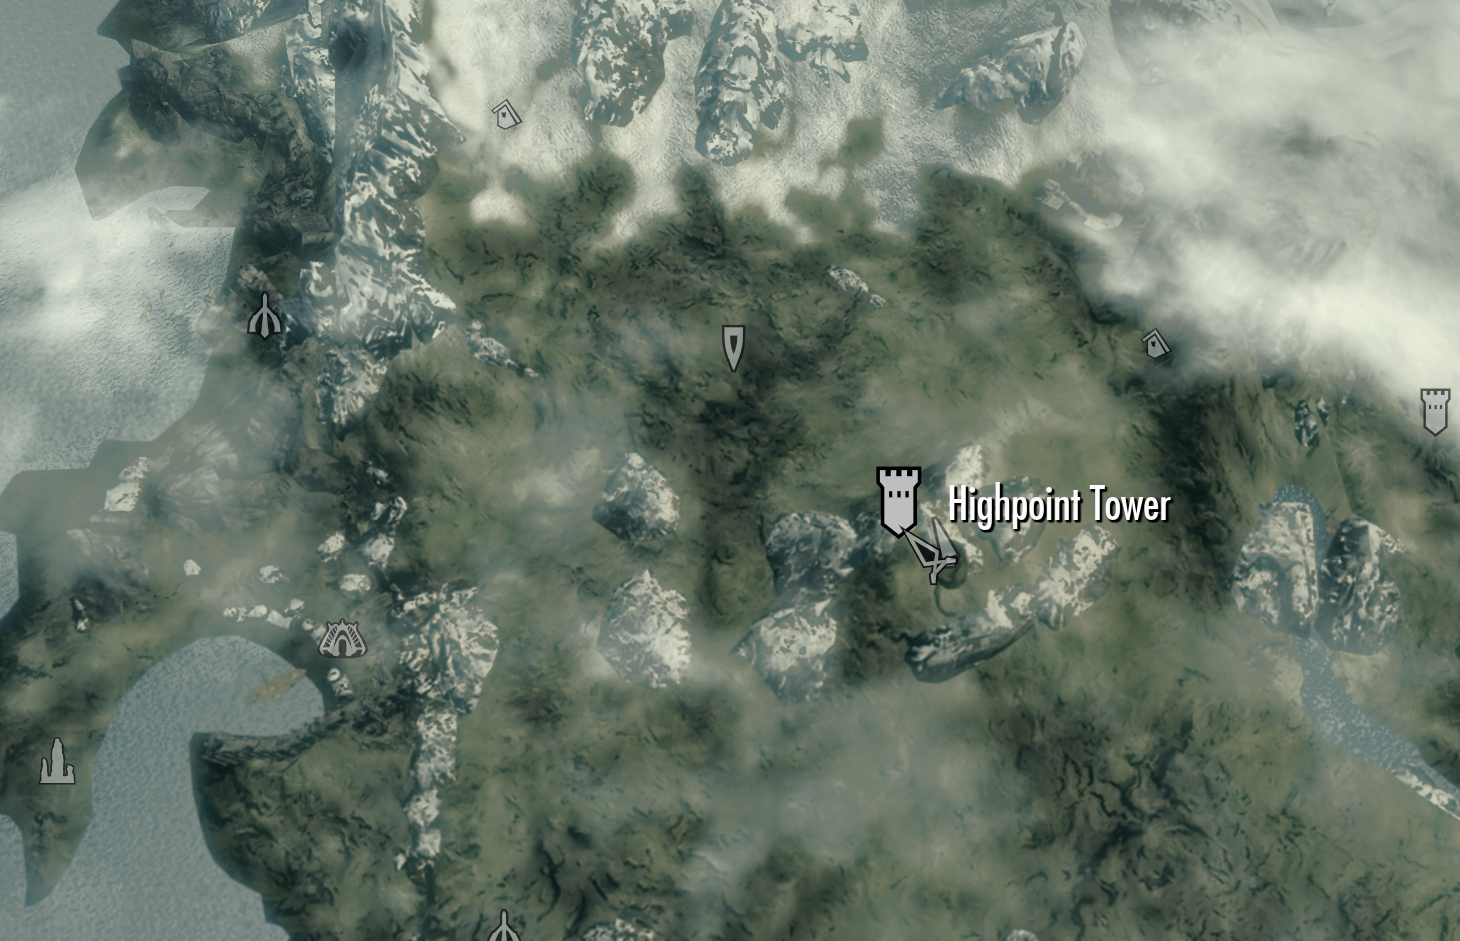 Highpoint Tower | Skyrim Wiki